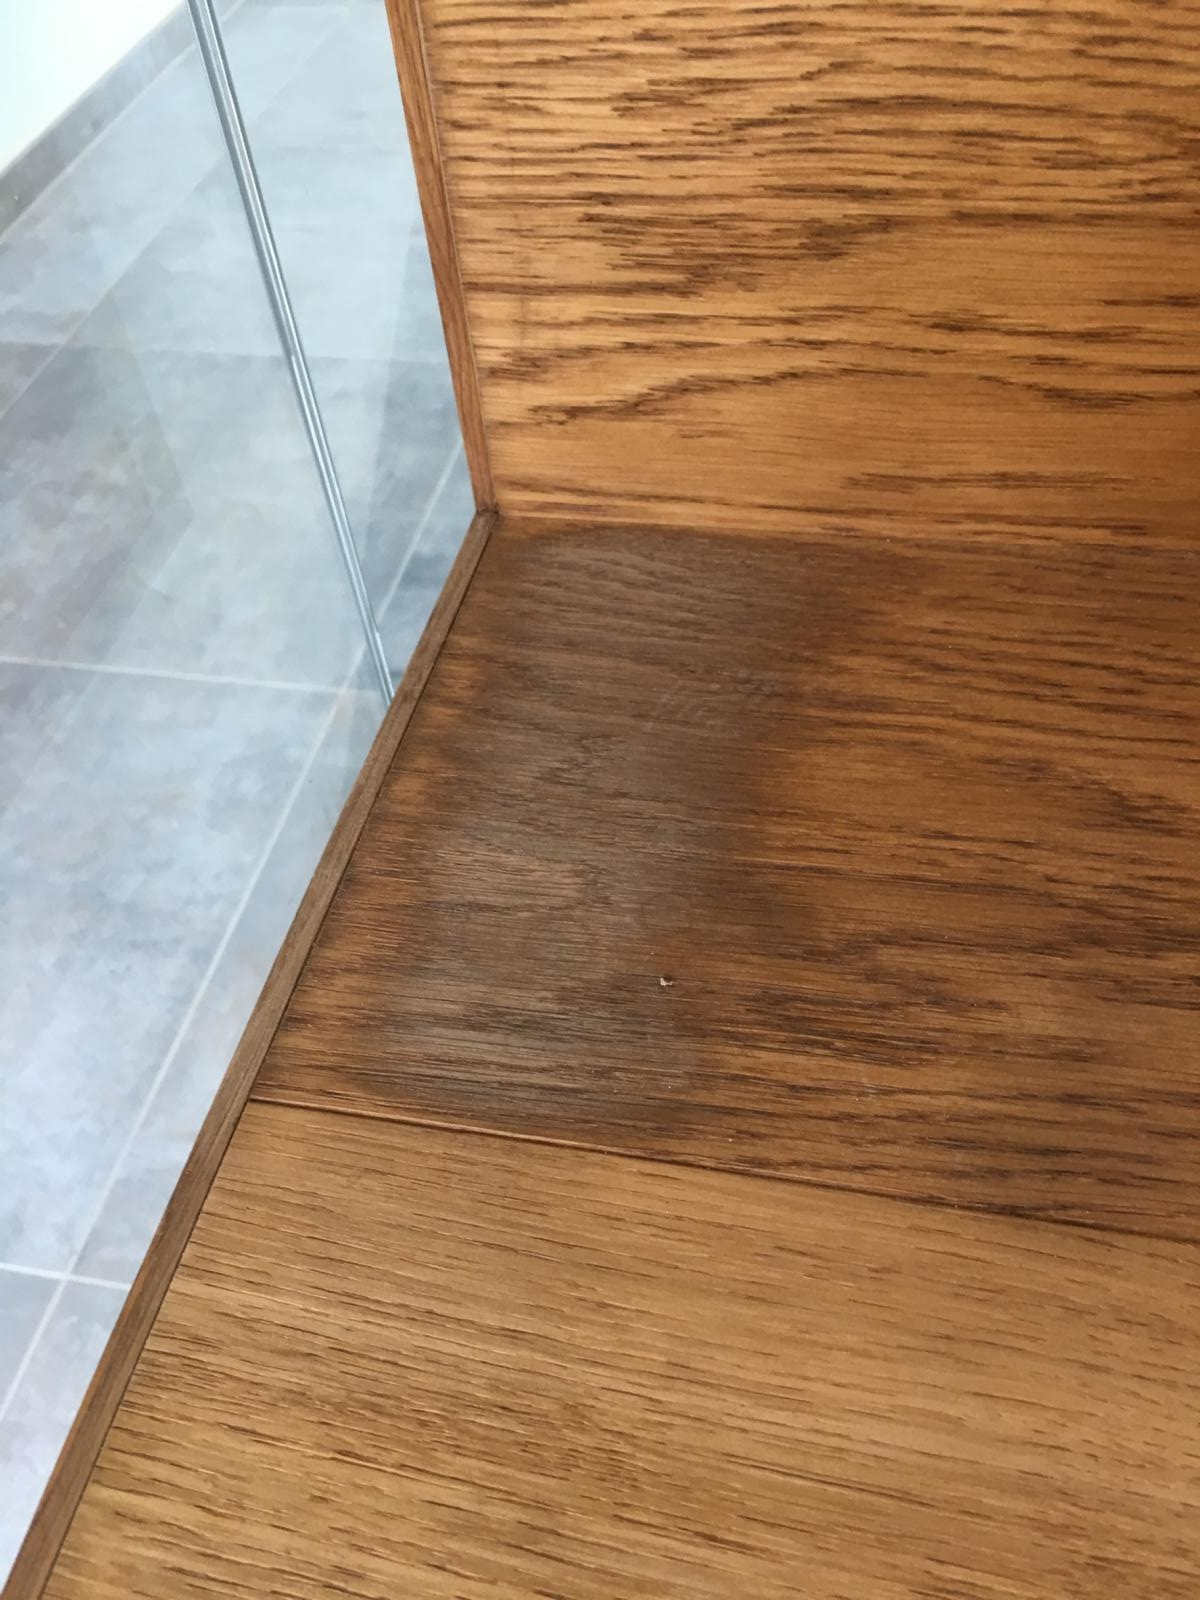 Dark stains in a parquet due to ammonia gas